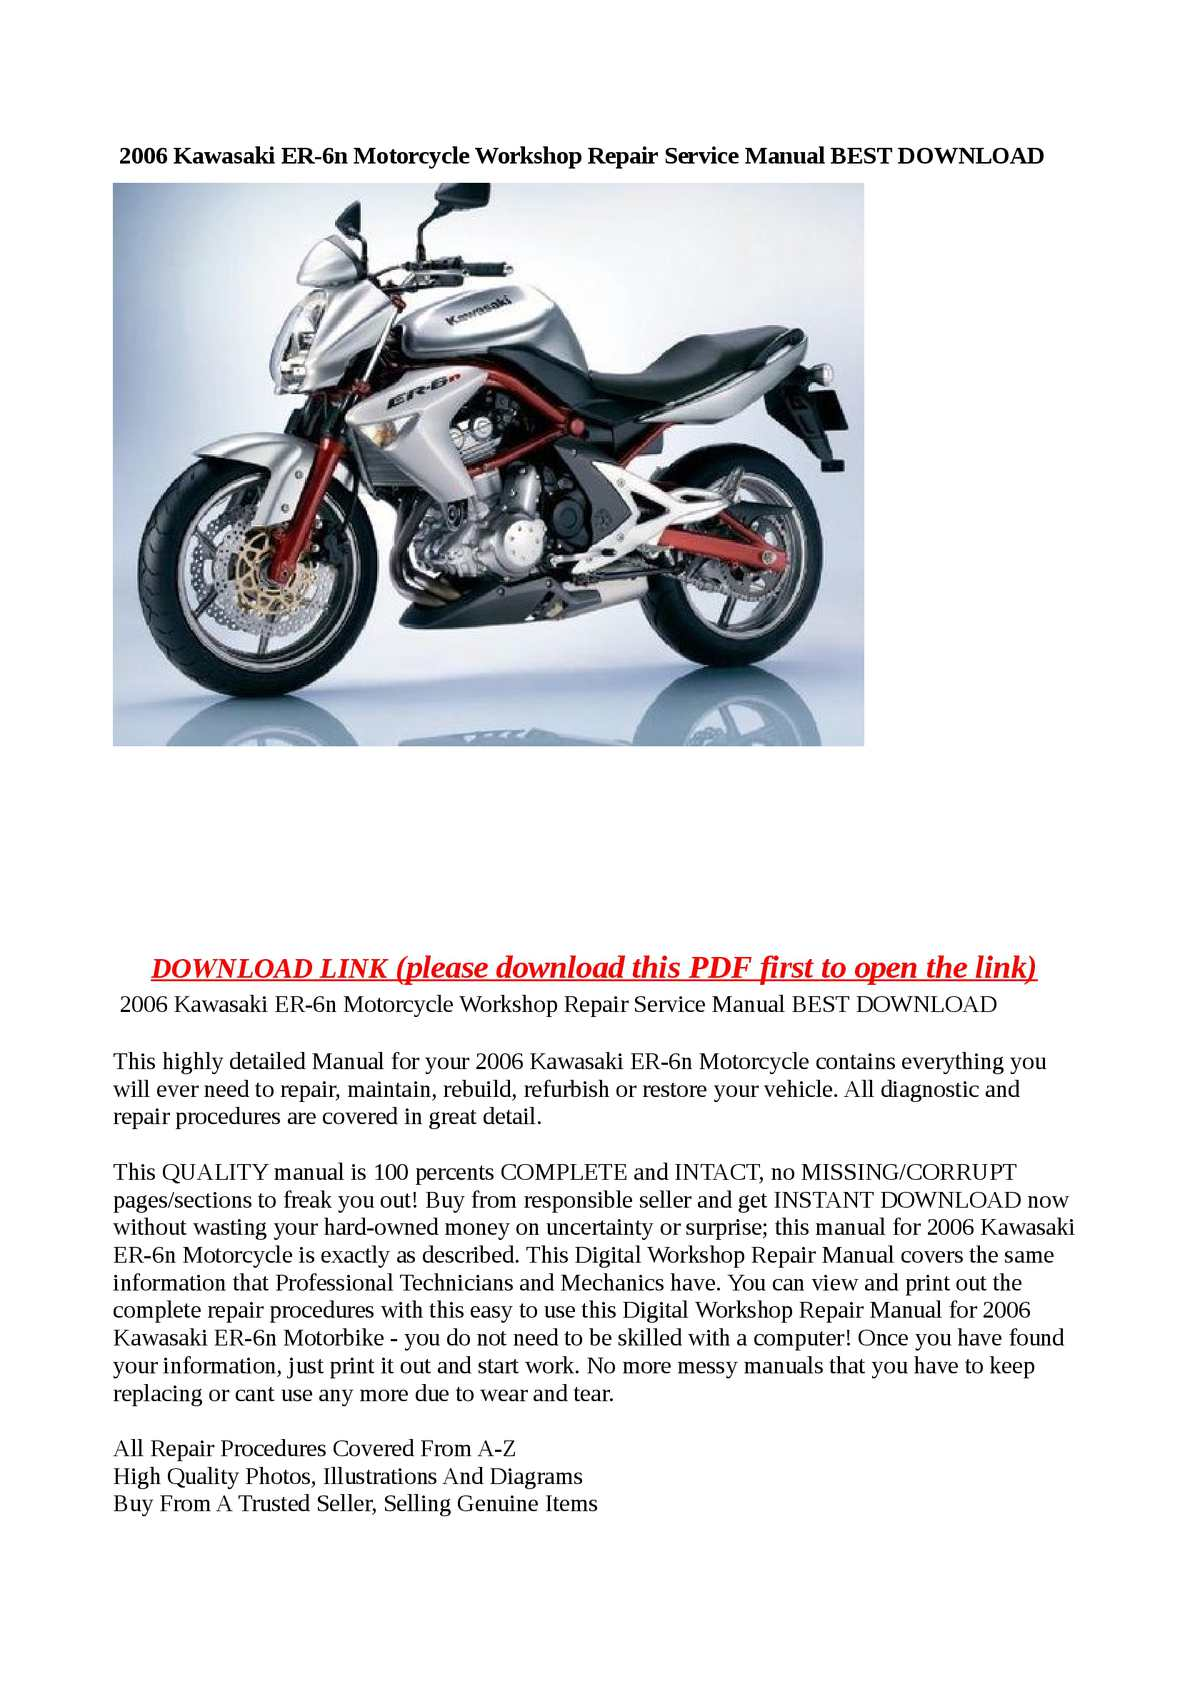 Kawasaki Er 6 Wiring Diagram Pdf Automotive Diagrams Er6f Calam O 2006 Er6n Motorcycle Workshop Repair Service Manual Best Download